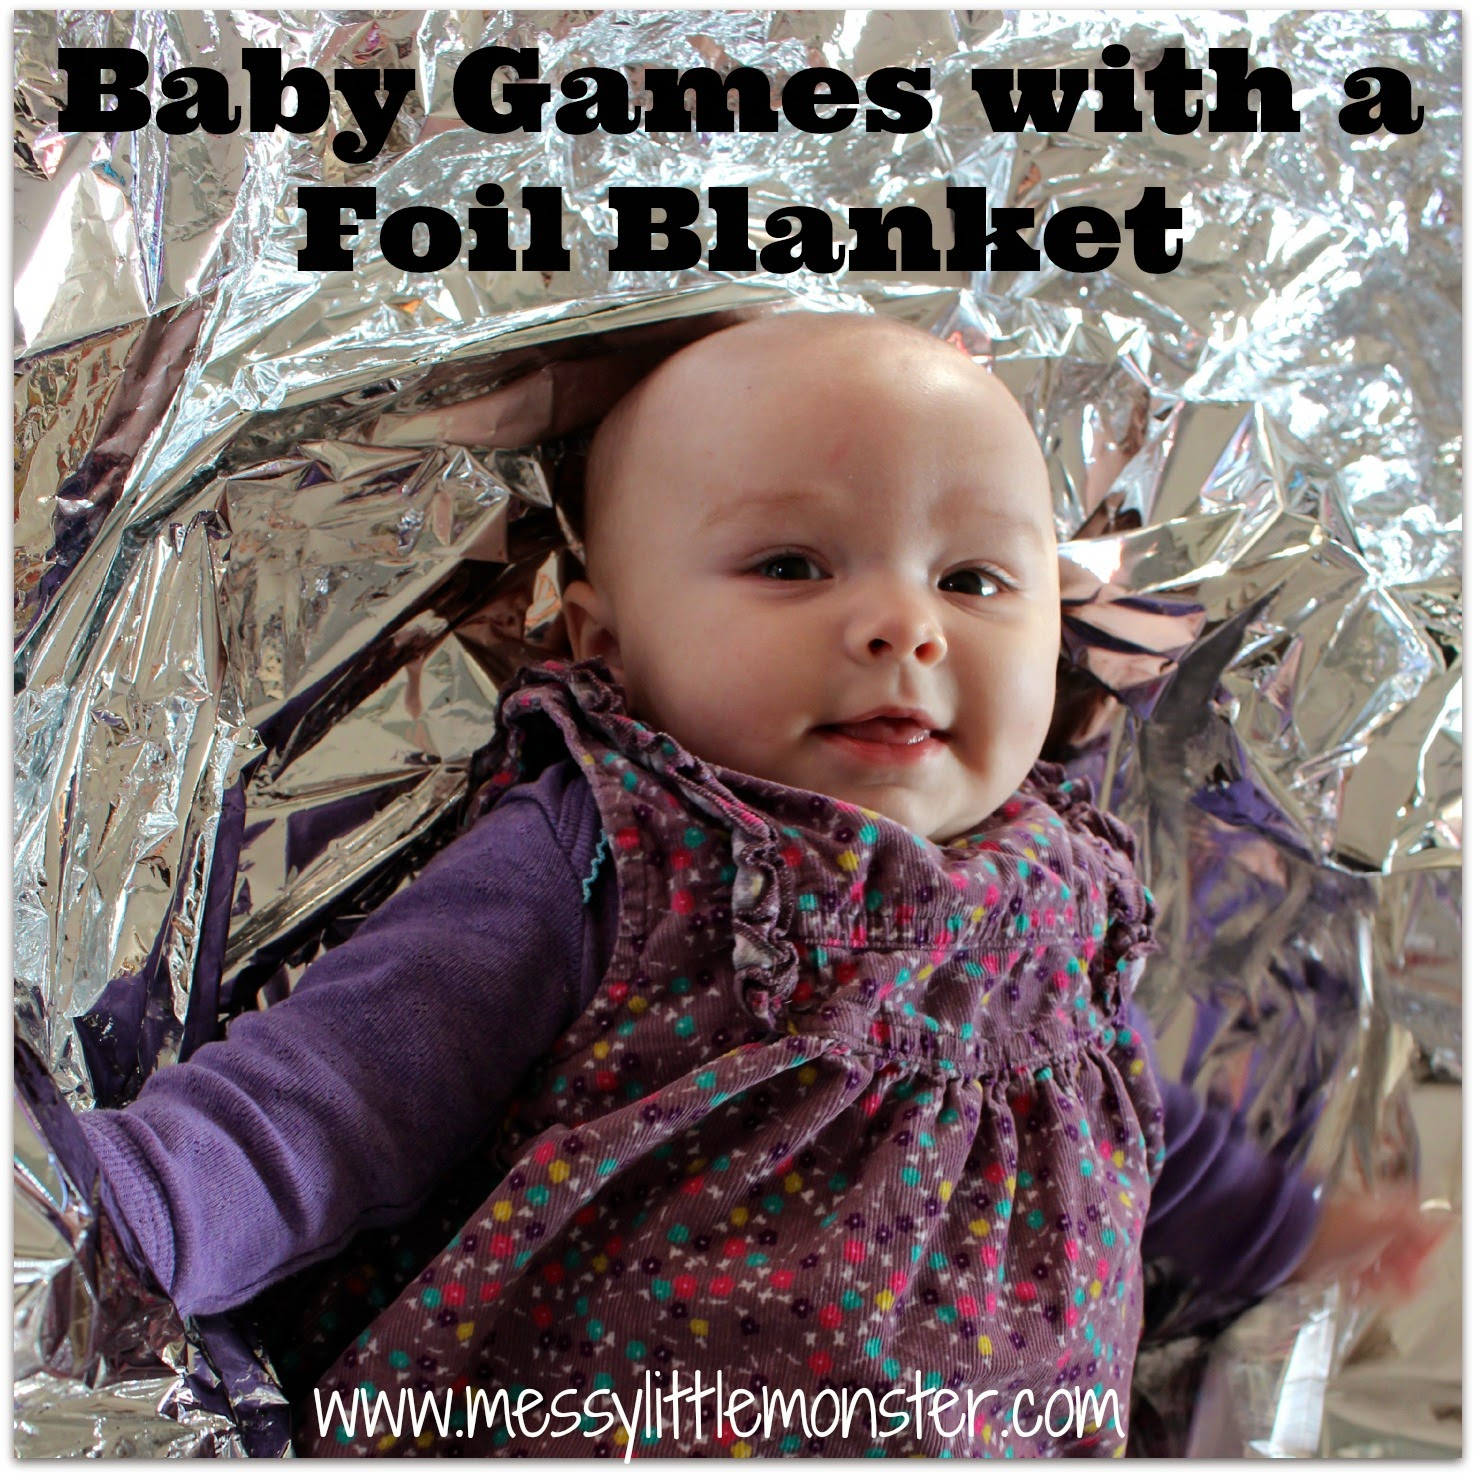 http://www.messylittlemonster.com/2014/11/baby-games-with-foil-blanket-0-6-months.html